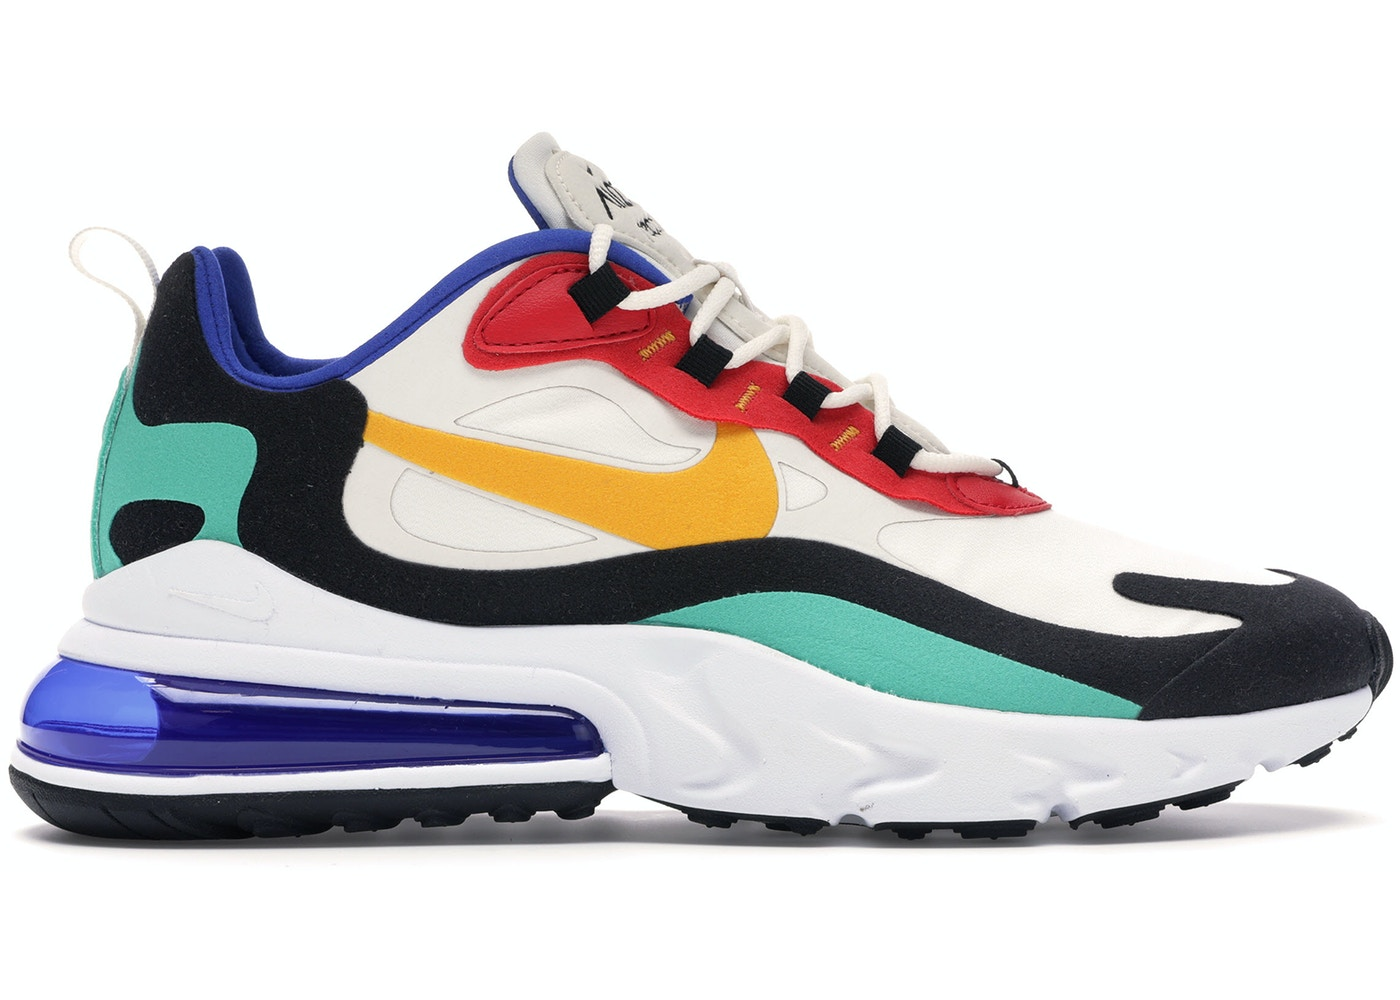 info for 2b275 2ab87 Air Max 270 React Bauhaus